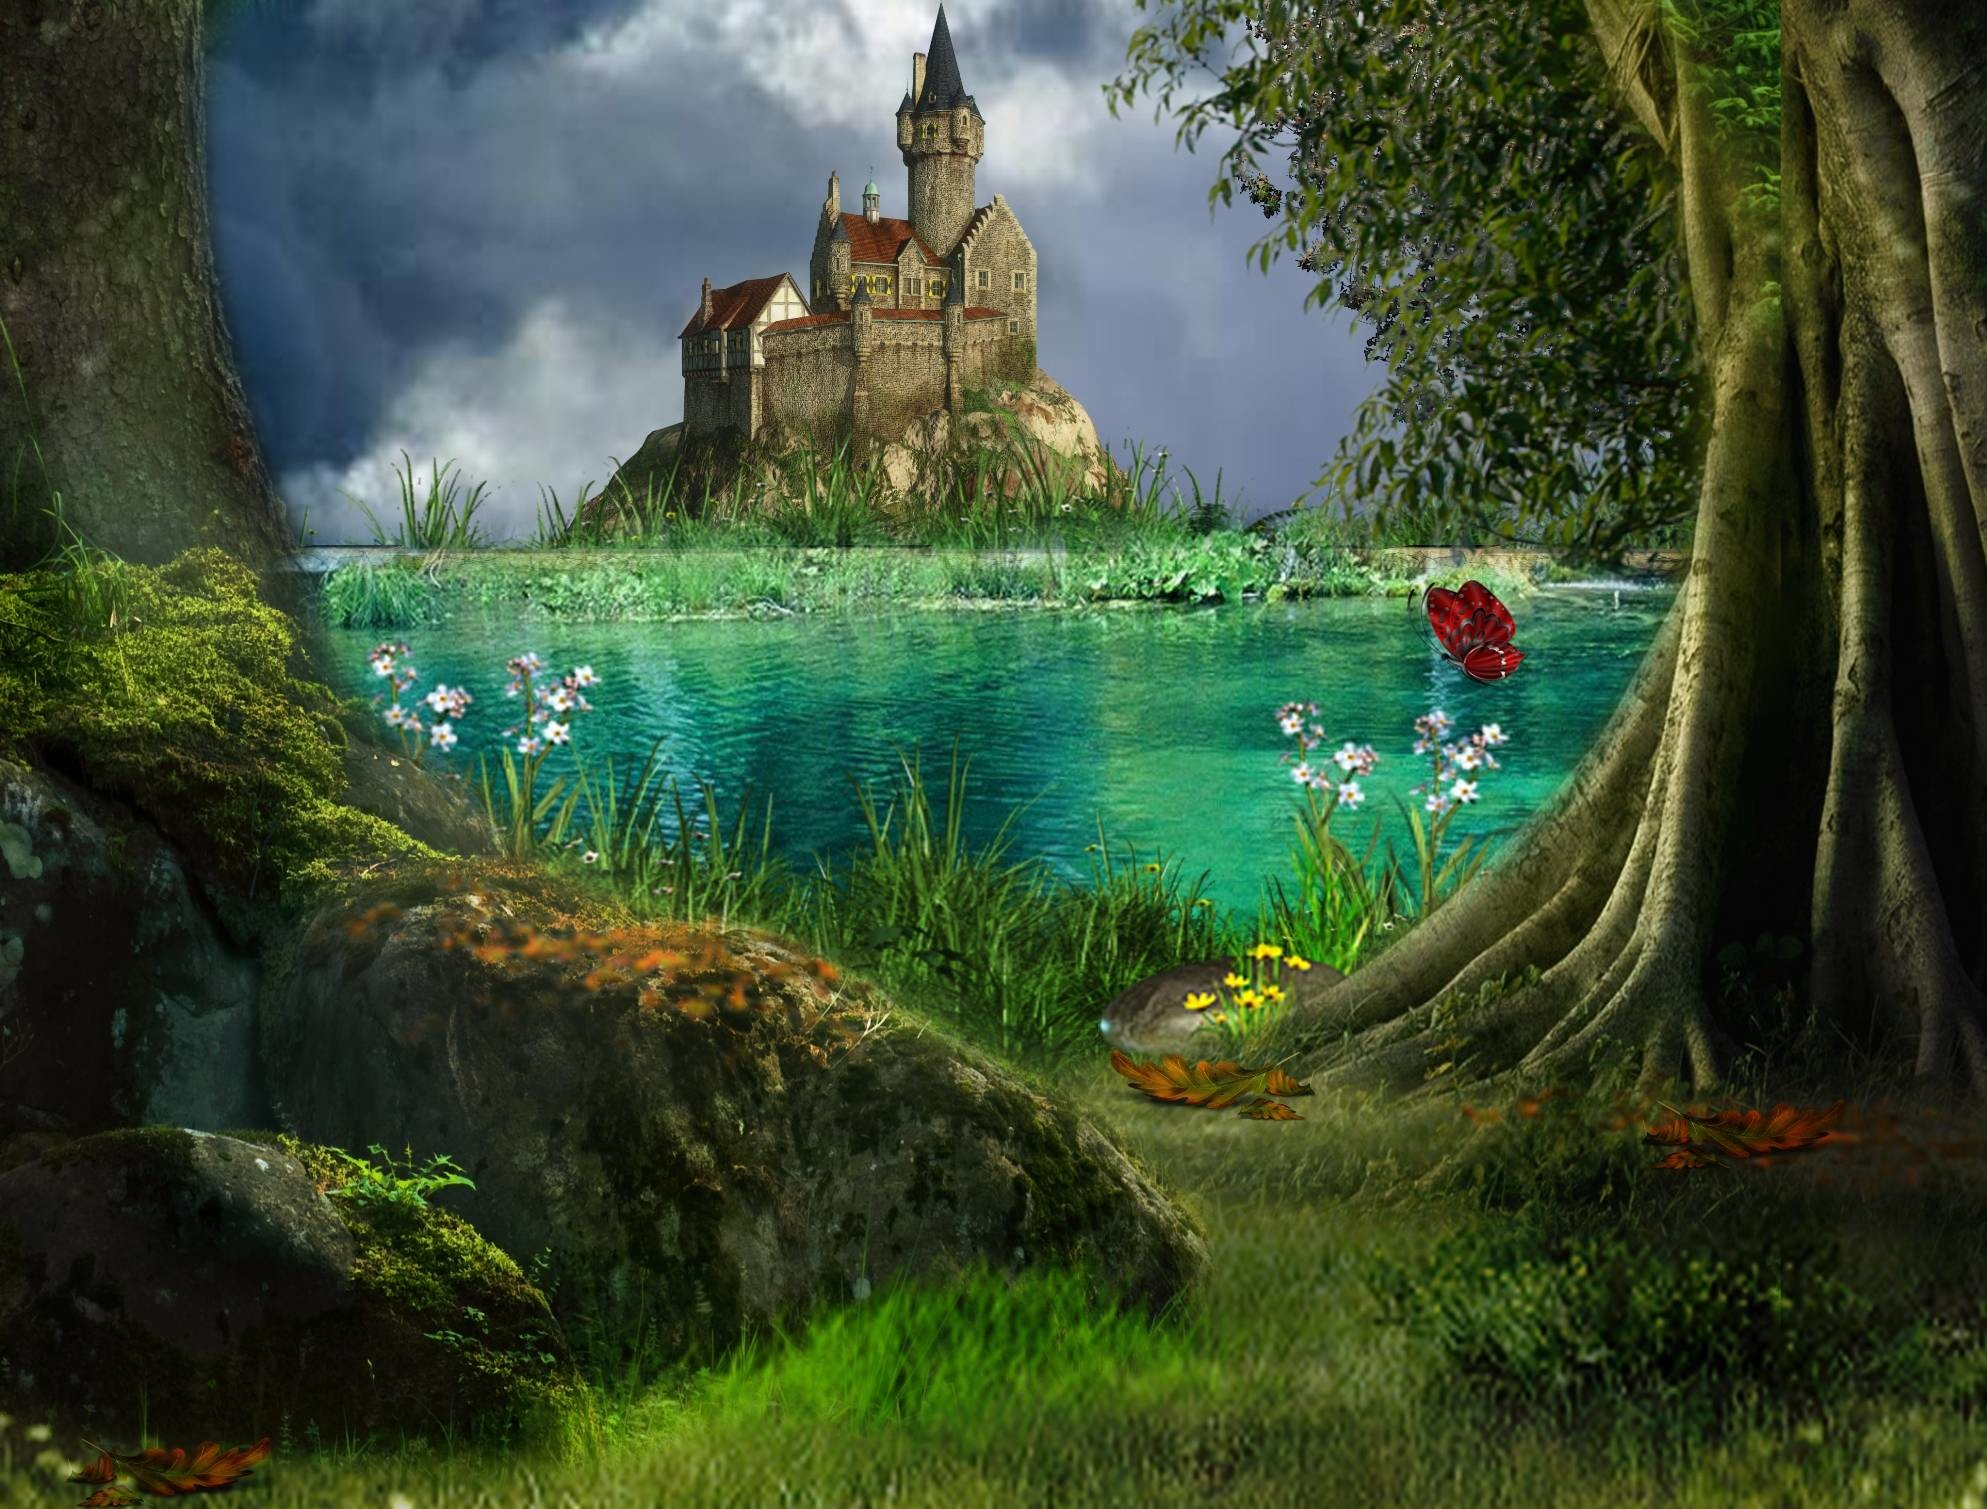 Fairy Tale Backgrounds 62 images 1987x1509